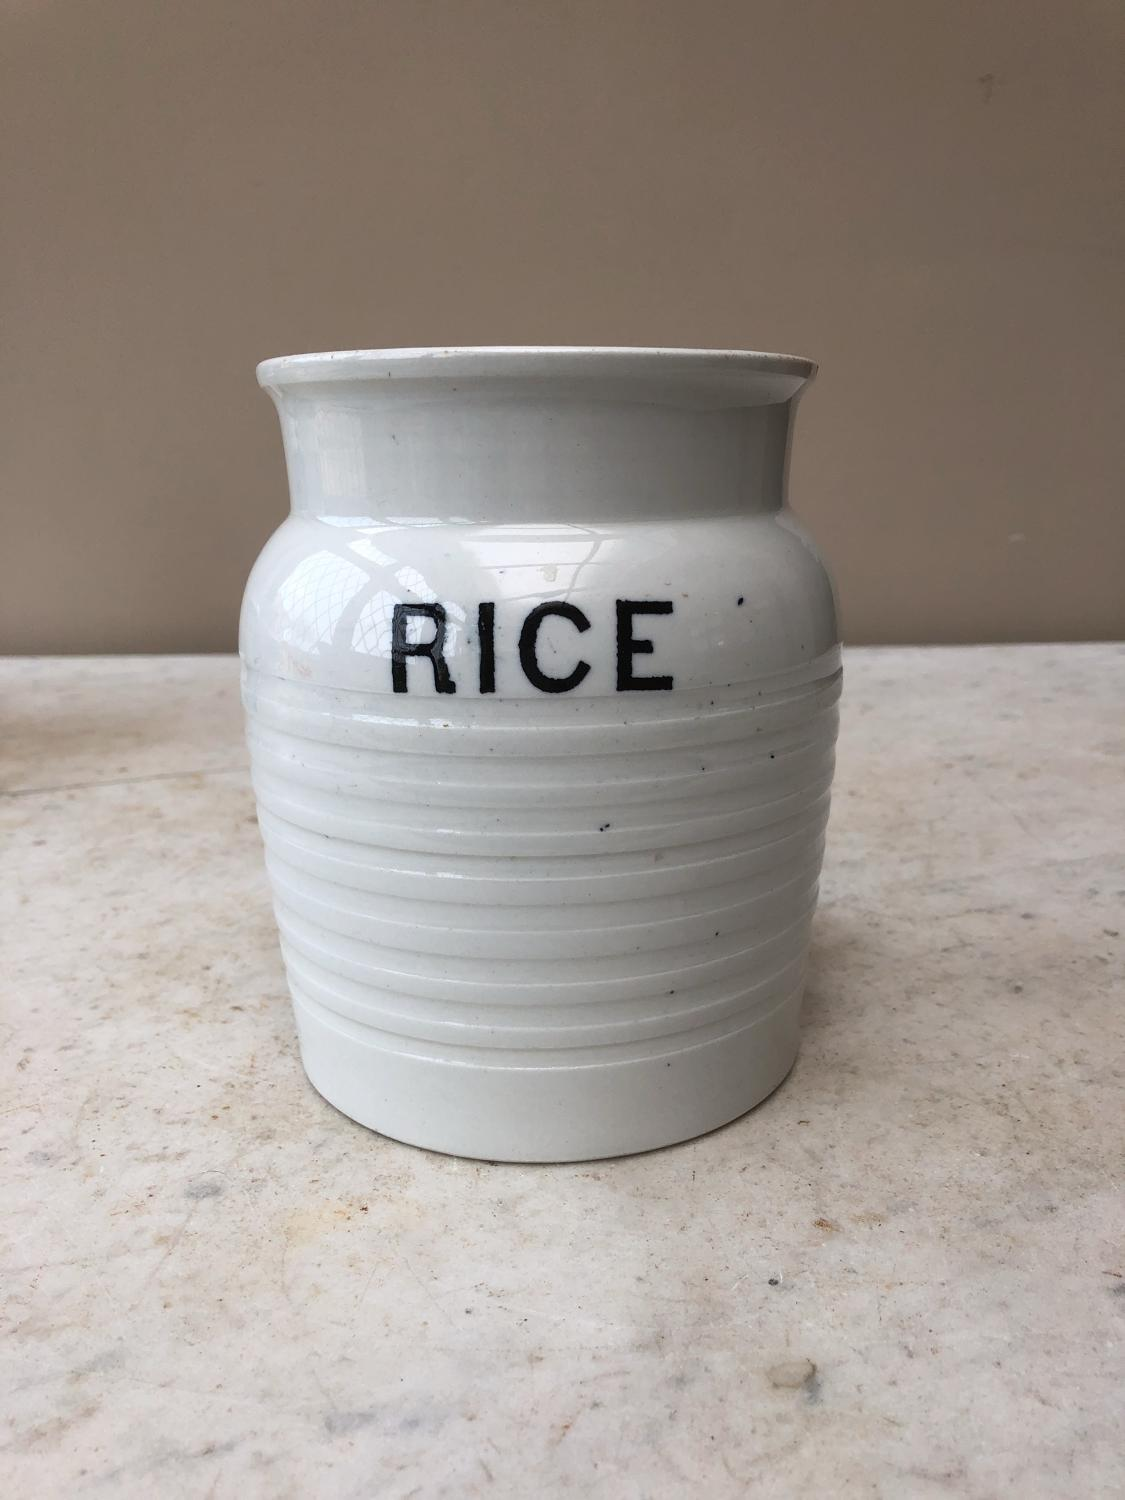 Early 20th Century White Banded Kitchen Storage Jar - Rice